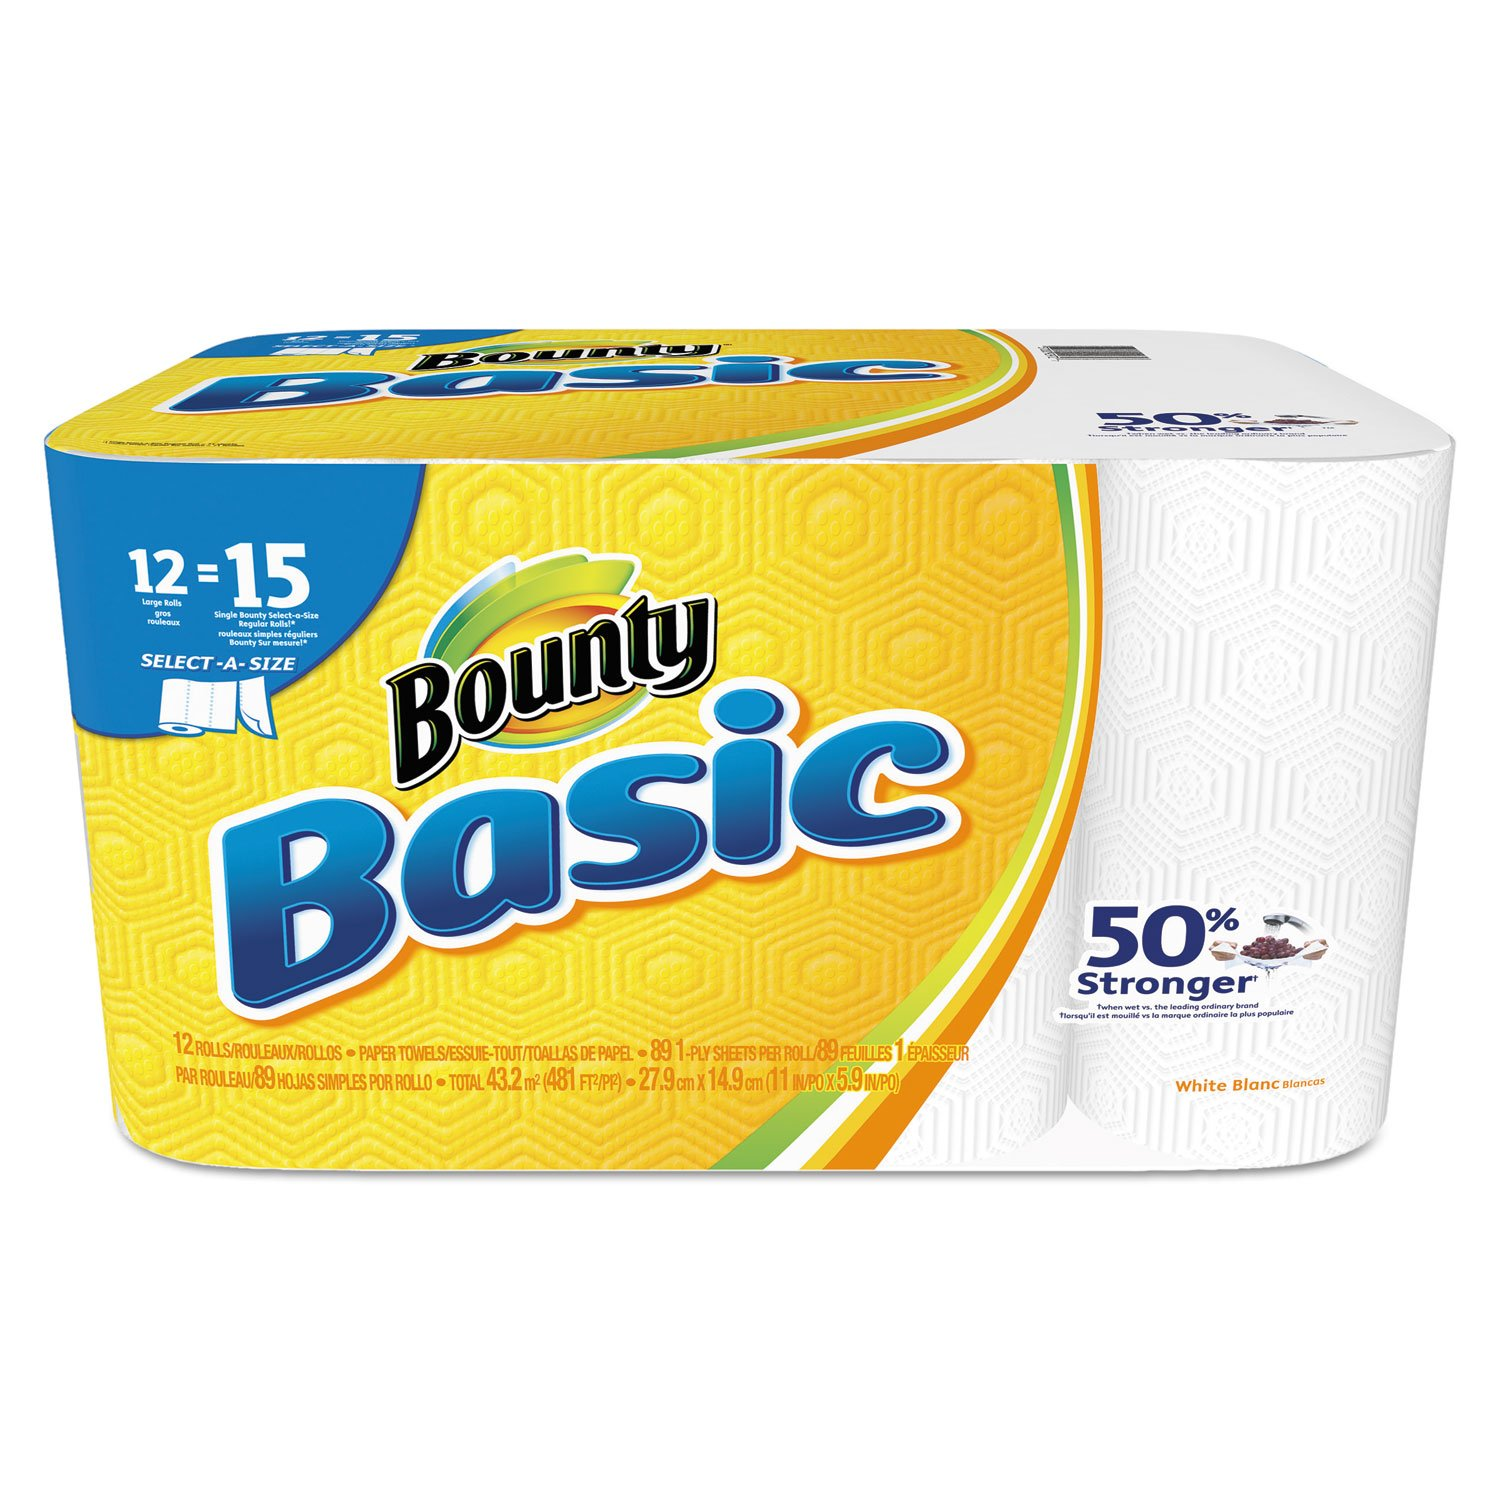 Bounty 92972 Basic Select-a-Size Paper Towels, 5 9/10 x 11, 1-Ply, 89 Sheets Per Roll (Pack of 12 Rolls) by Bounty